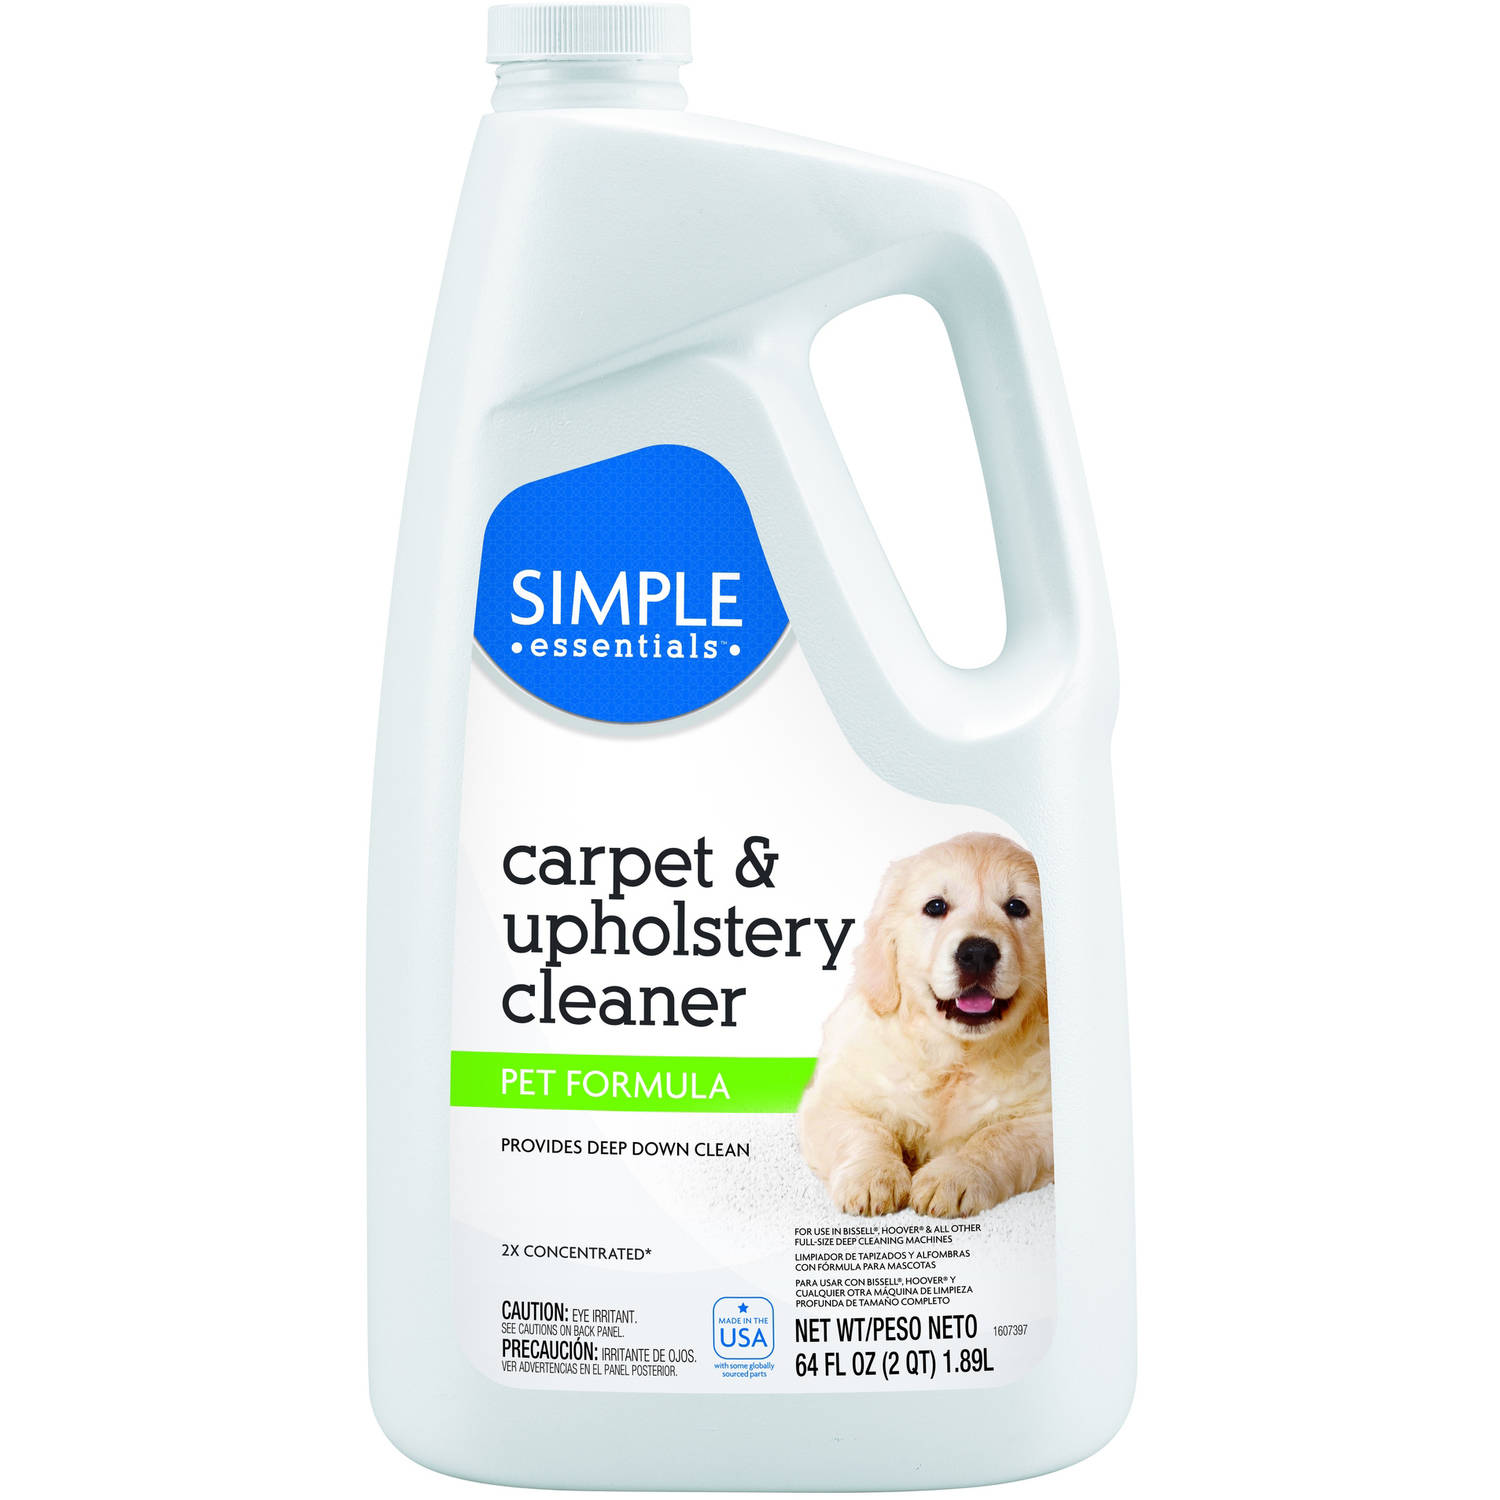 Simple Essentials Carpet & Upholstery Cleaner Pet Formula